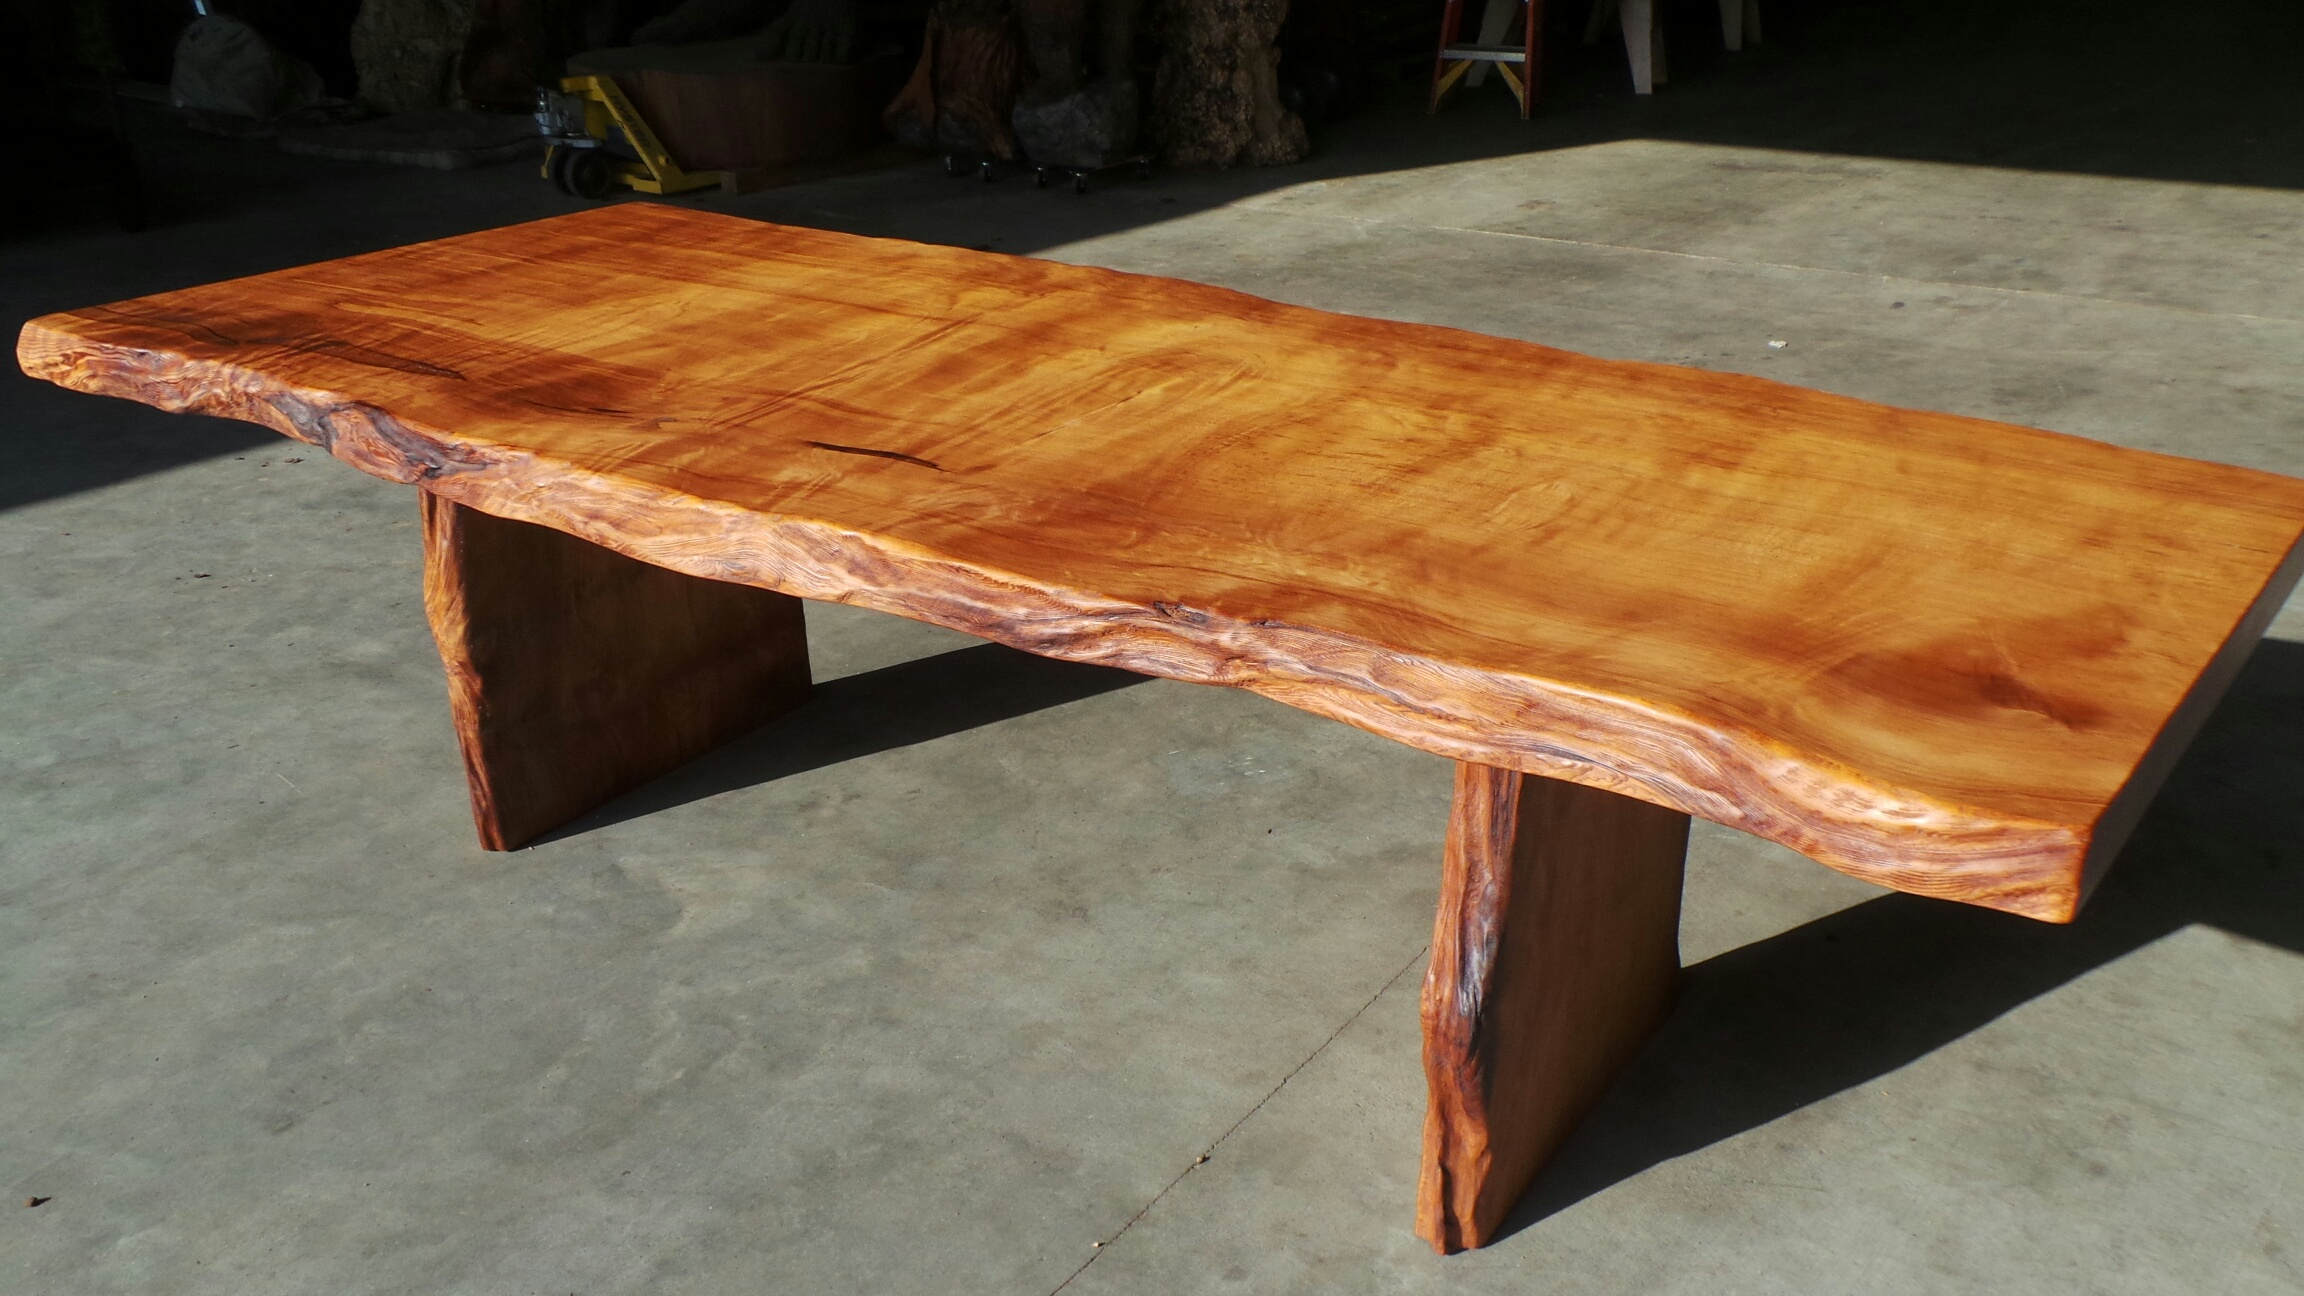 rustic dining tables live edge wood slabs redwood burl inc. Black Bedroom Furniture Sets. Home Design Ideas